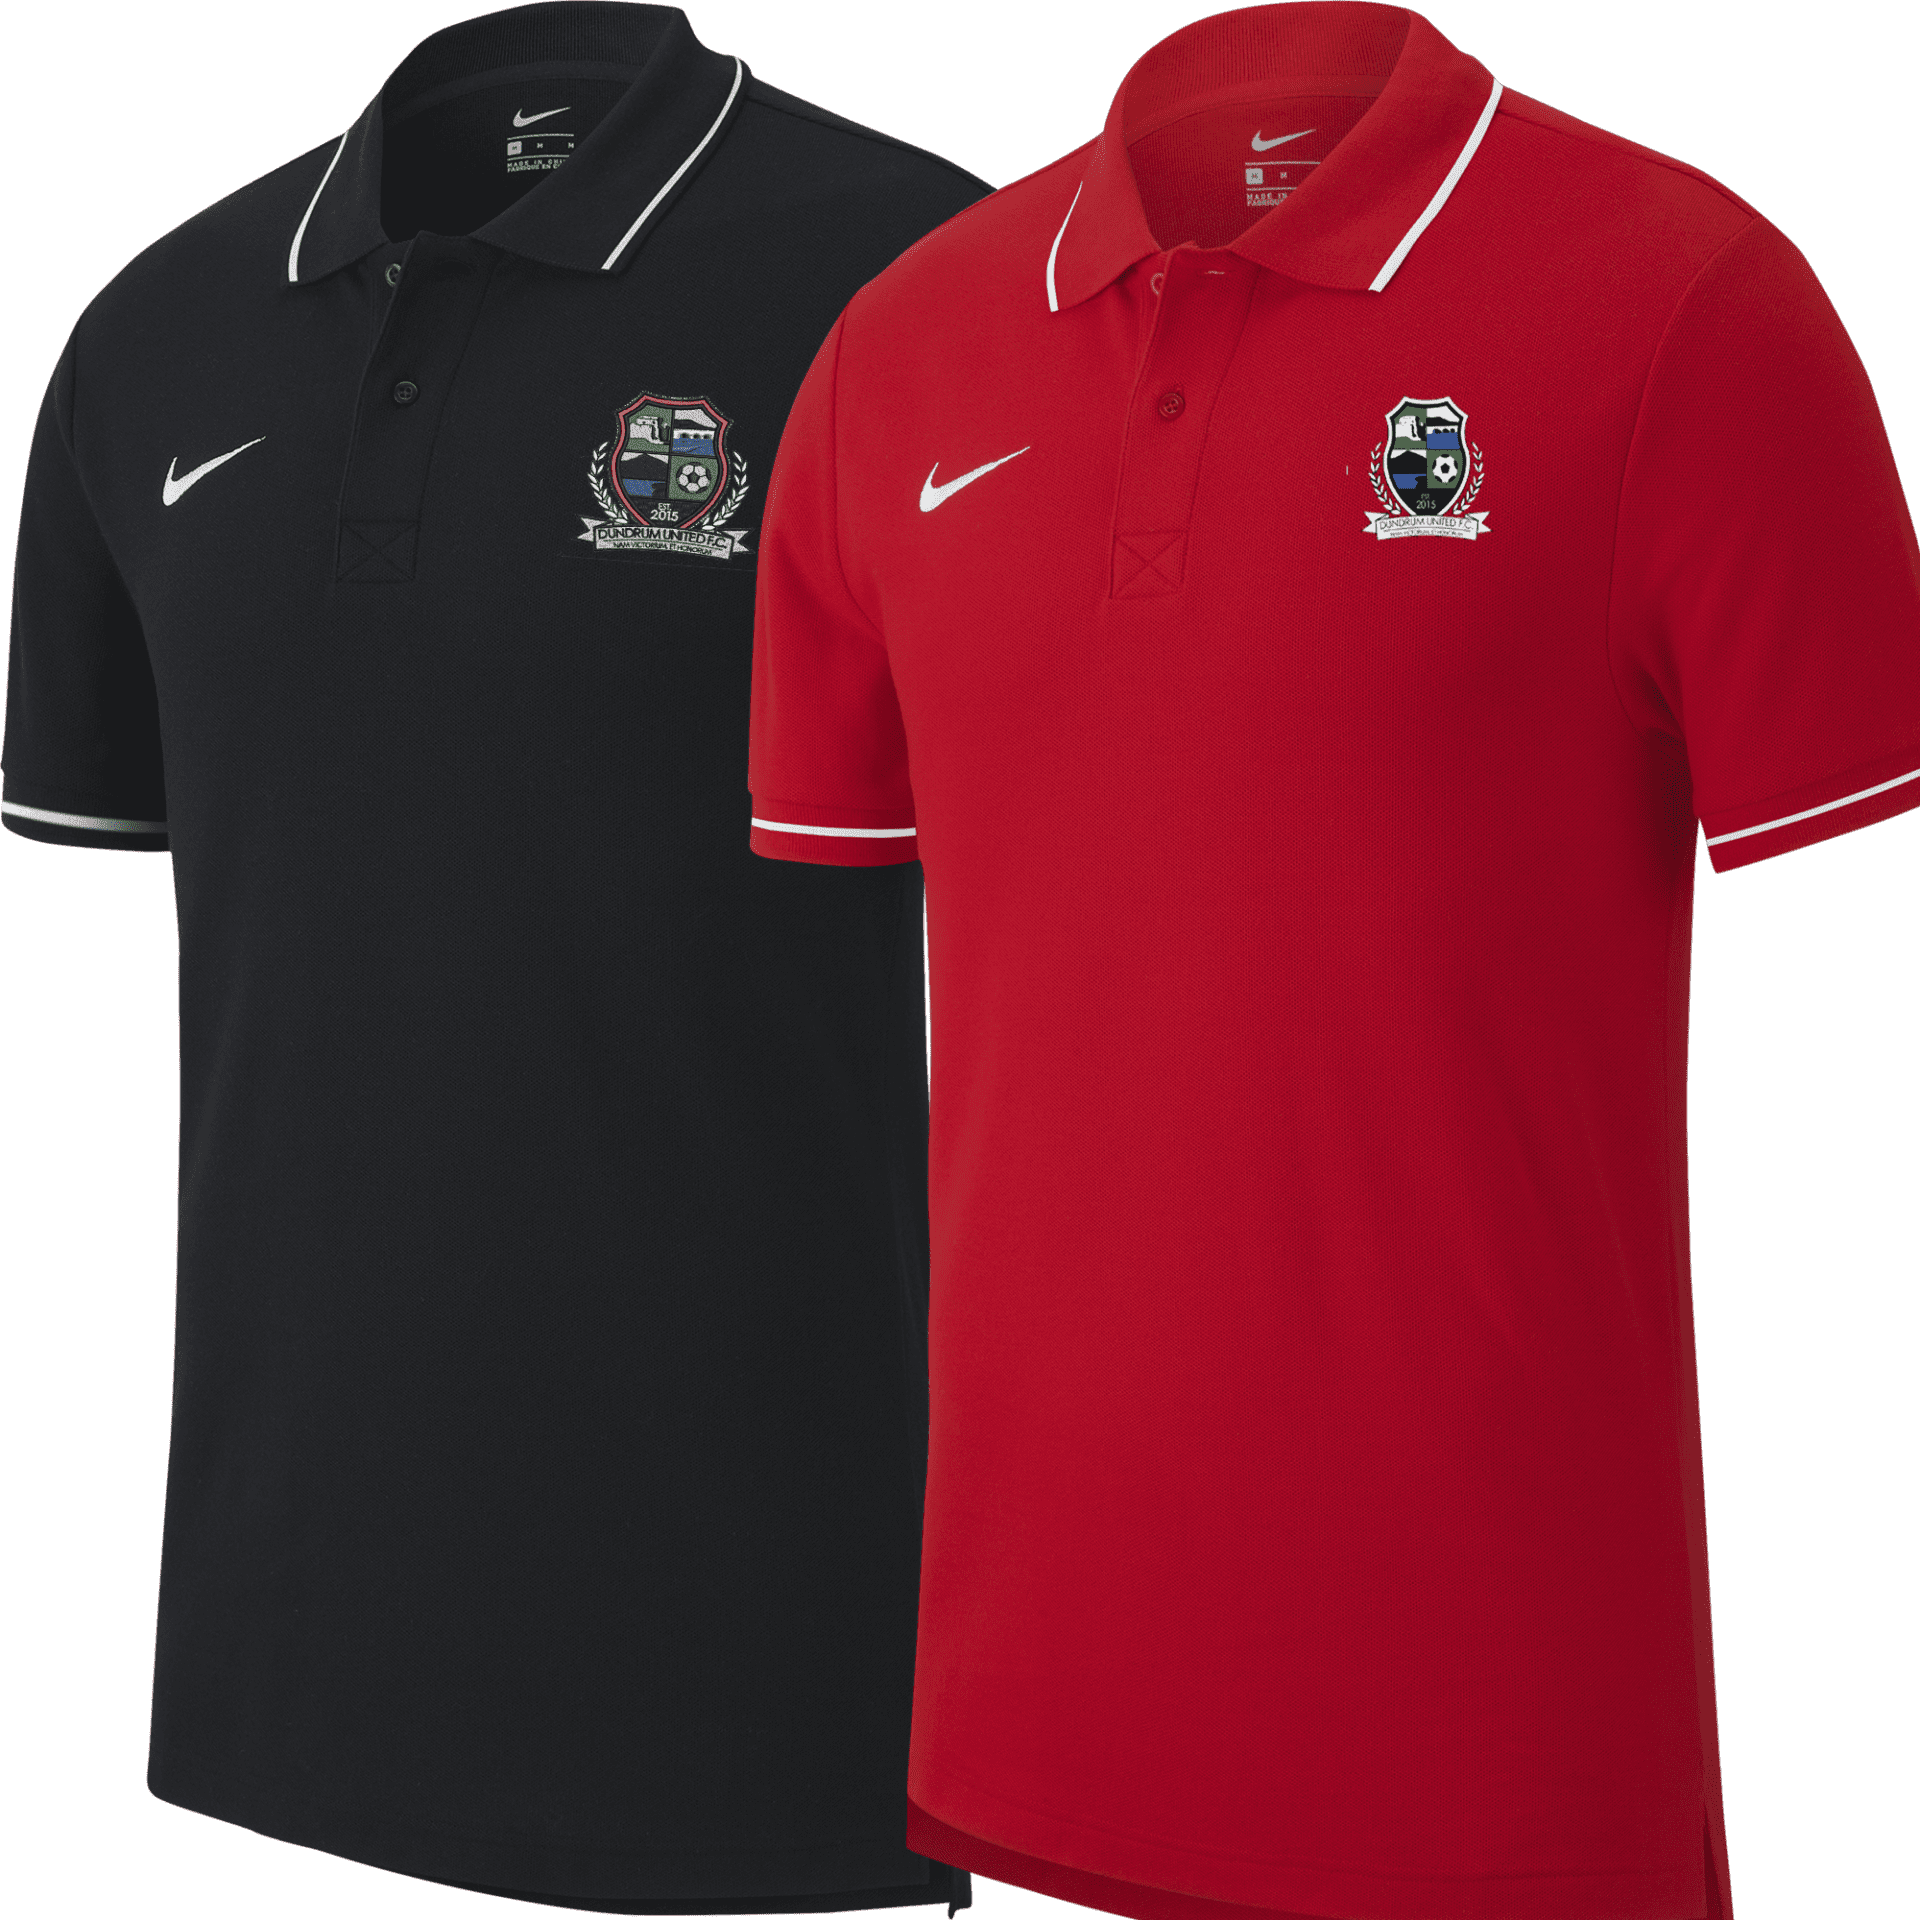 dundrum fc club 19 polo 34117 1 p